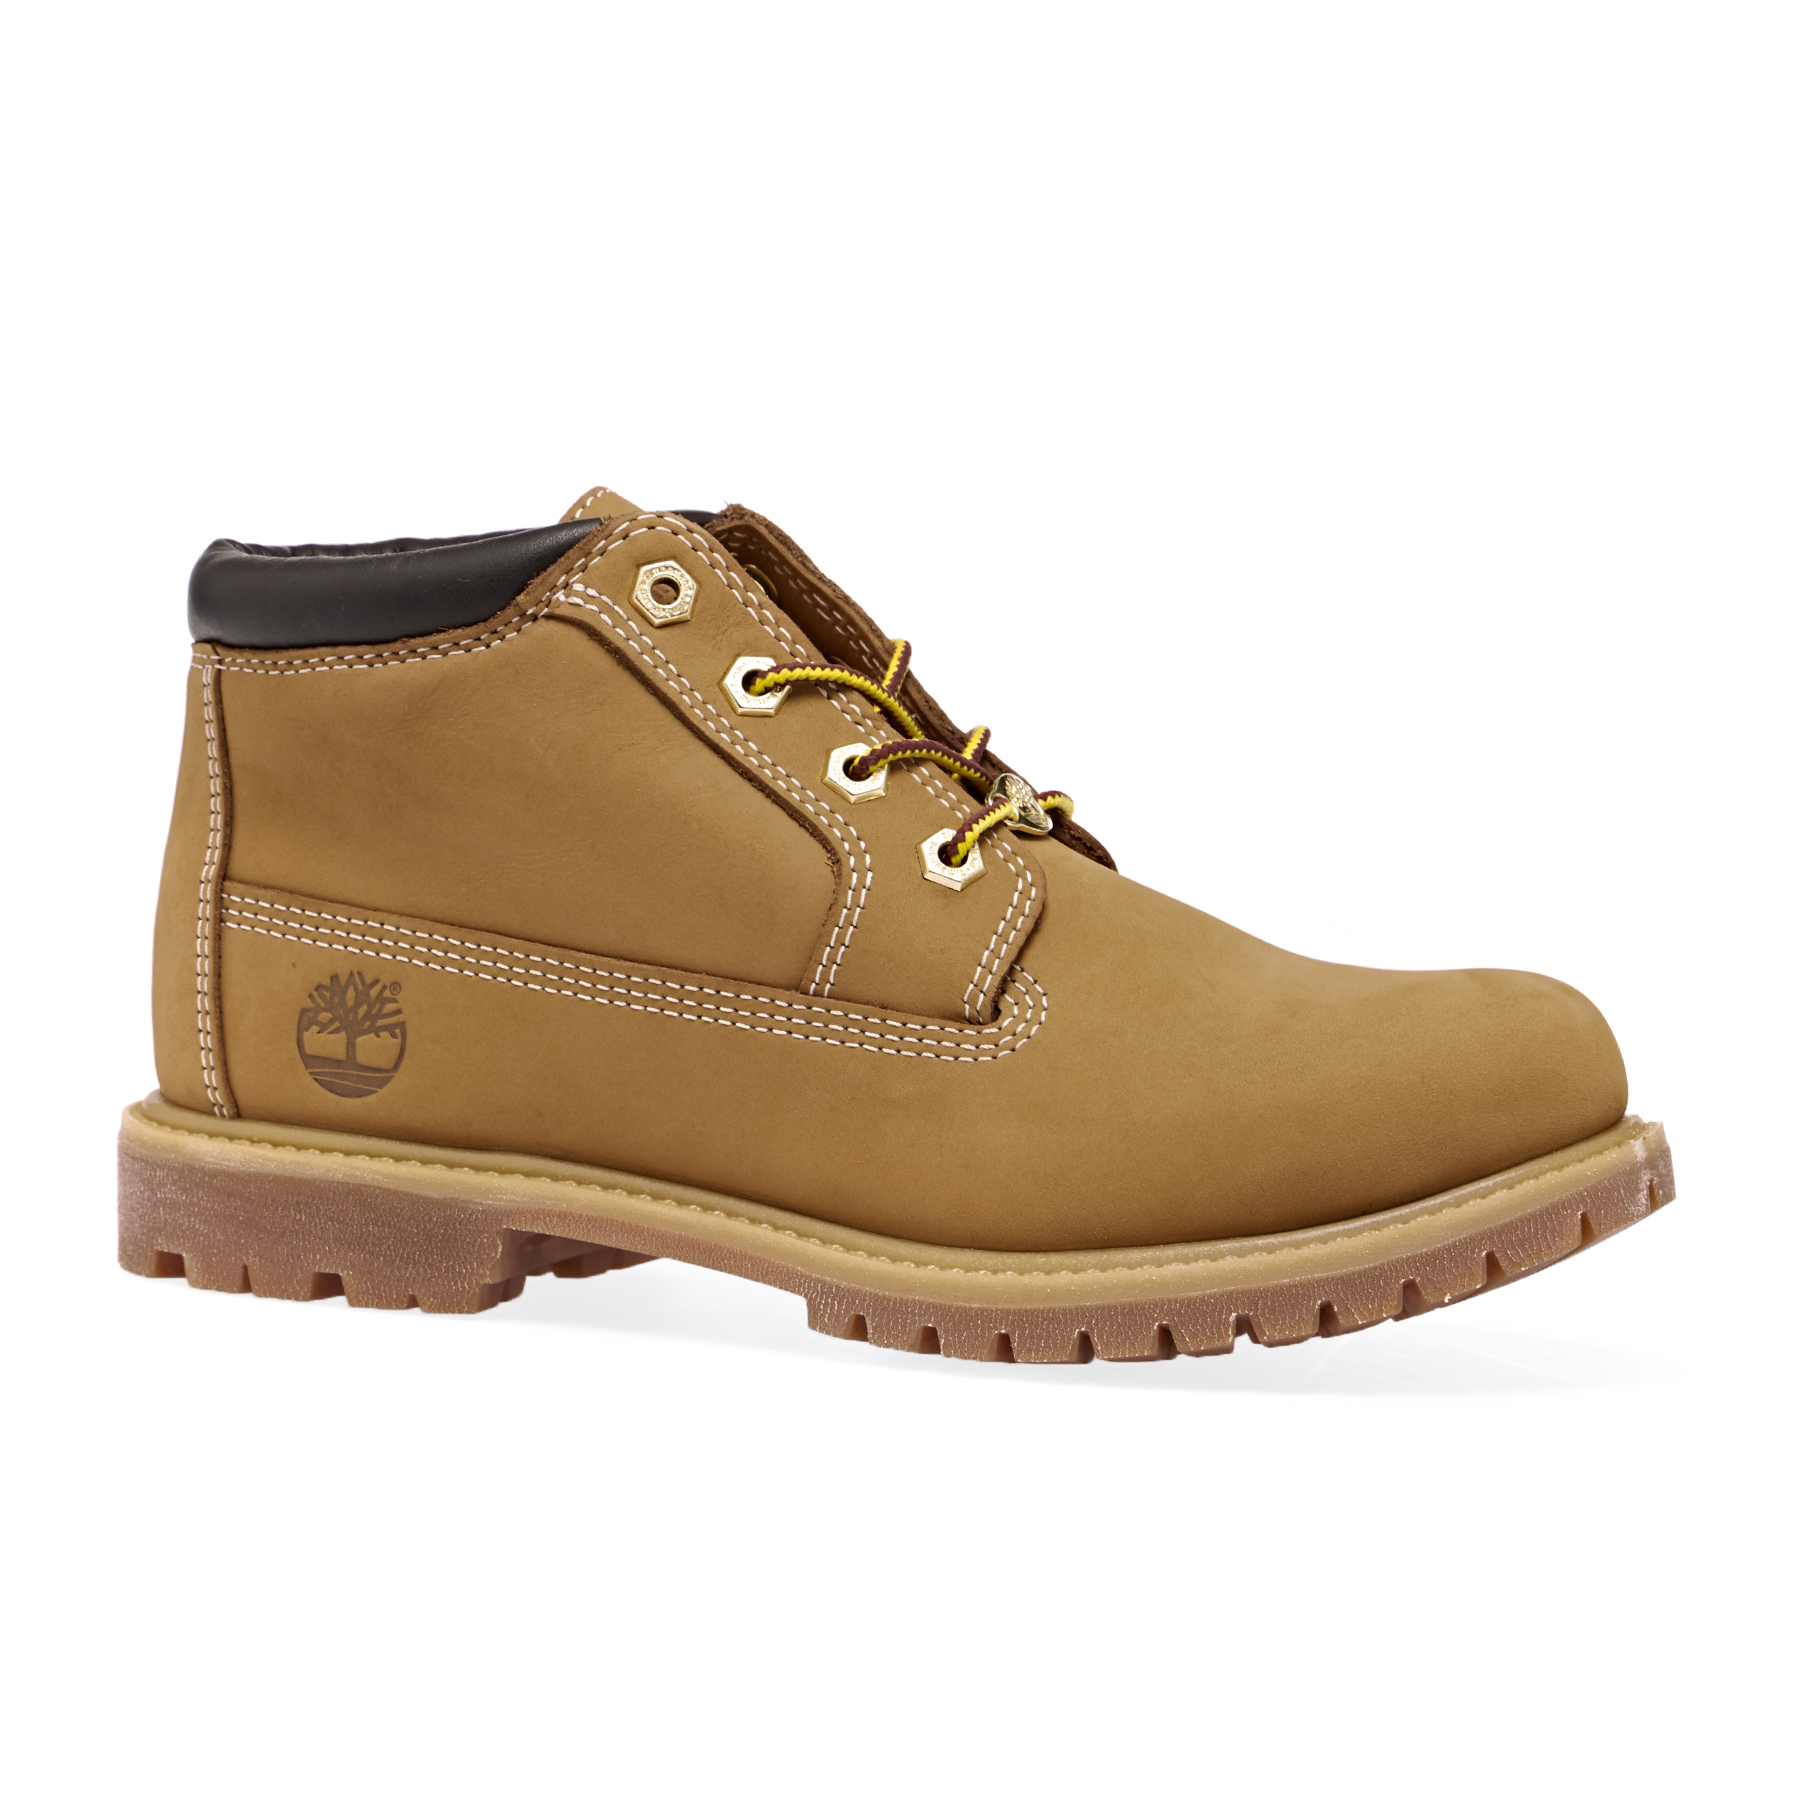 Stivali Donna Timberland Earthkeepers Nellie Chukka Double WTPF disponibile su Surfdome Italia